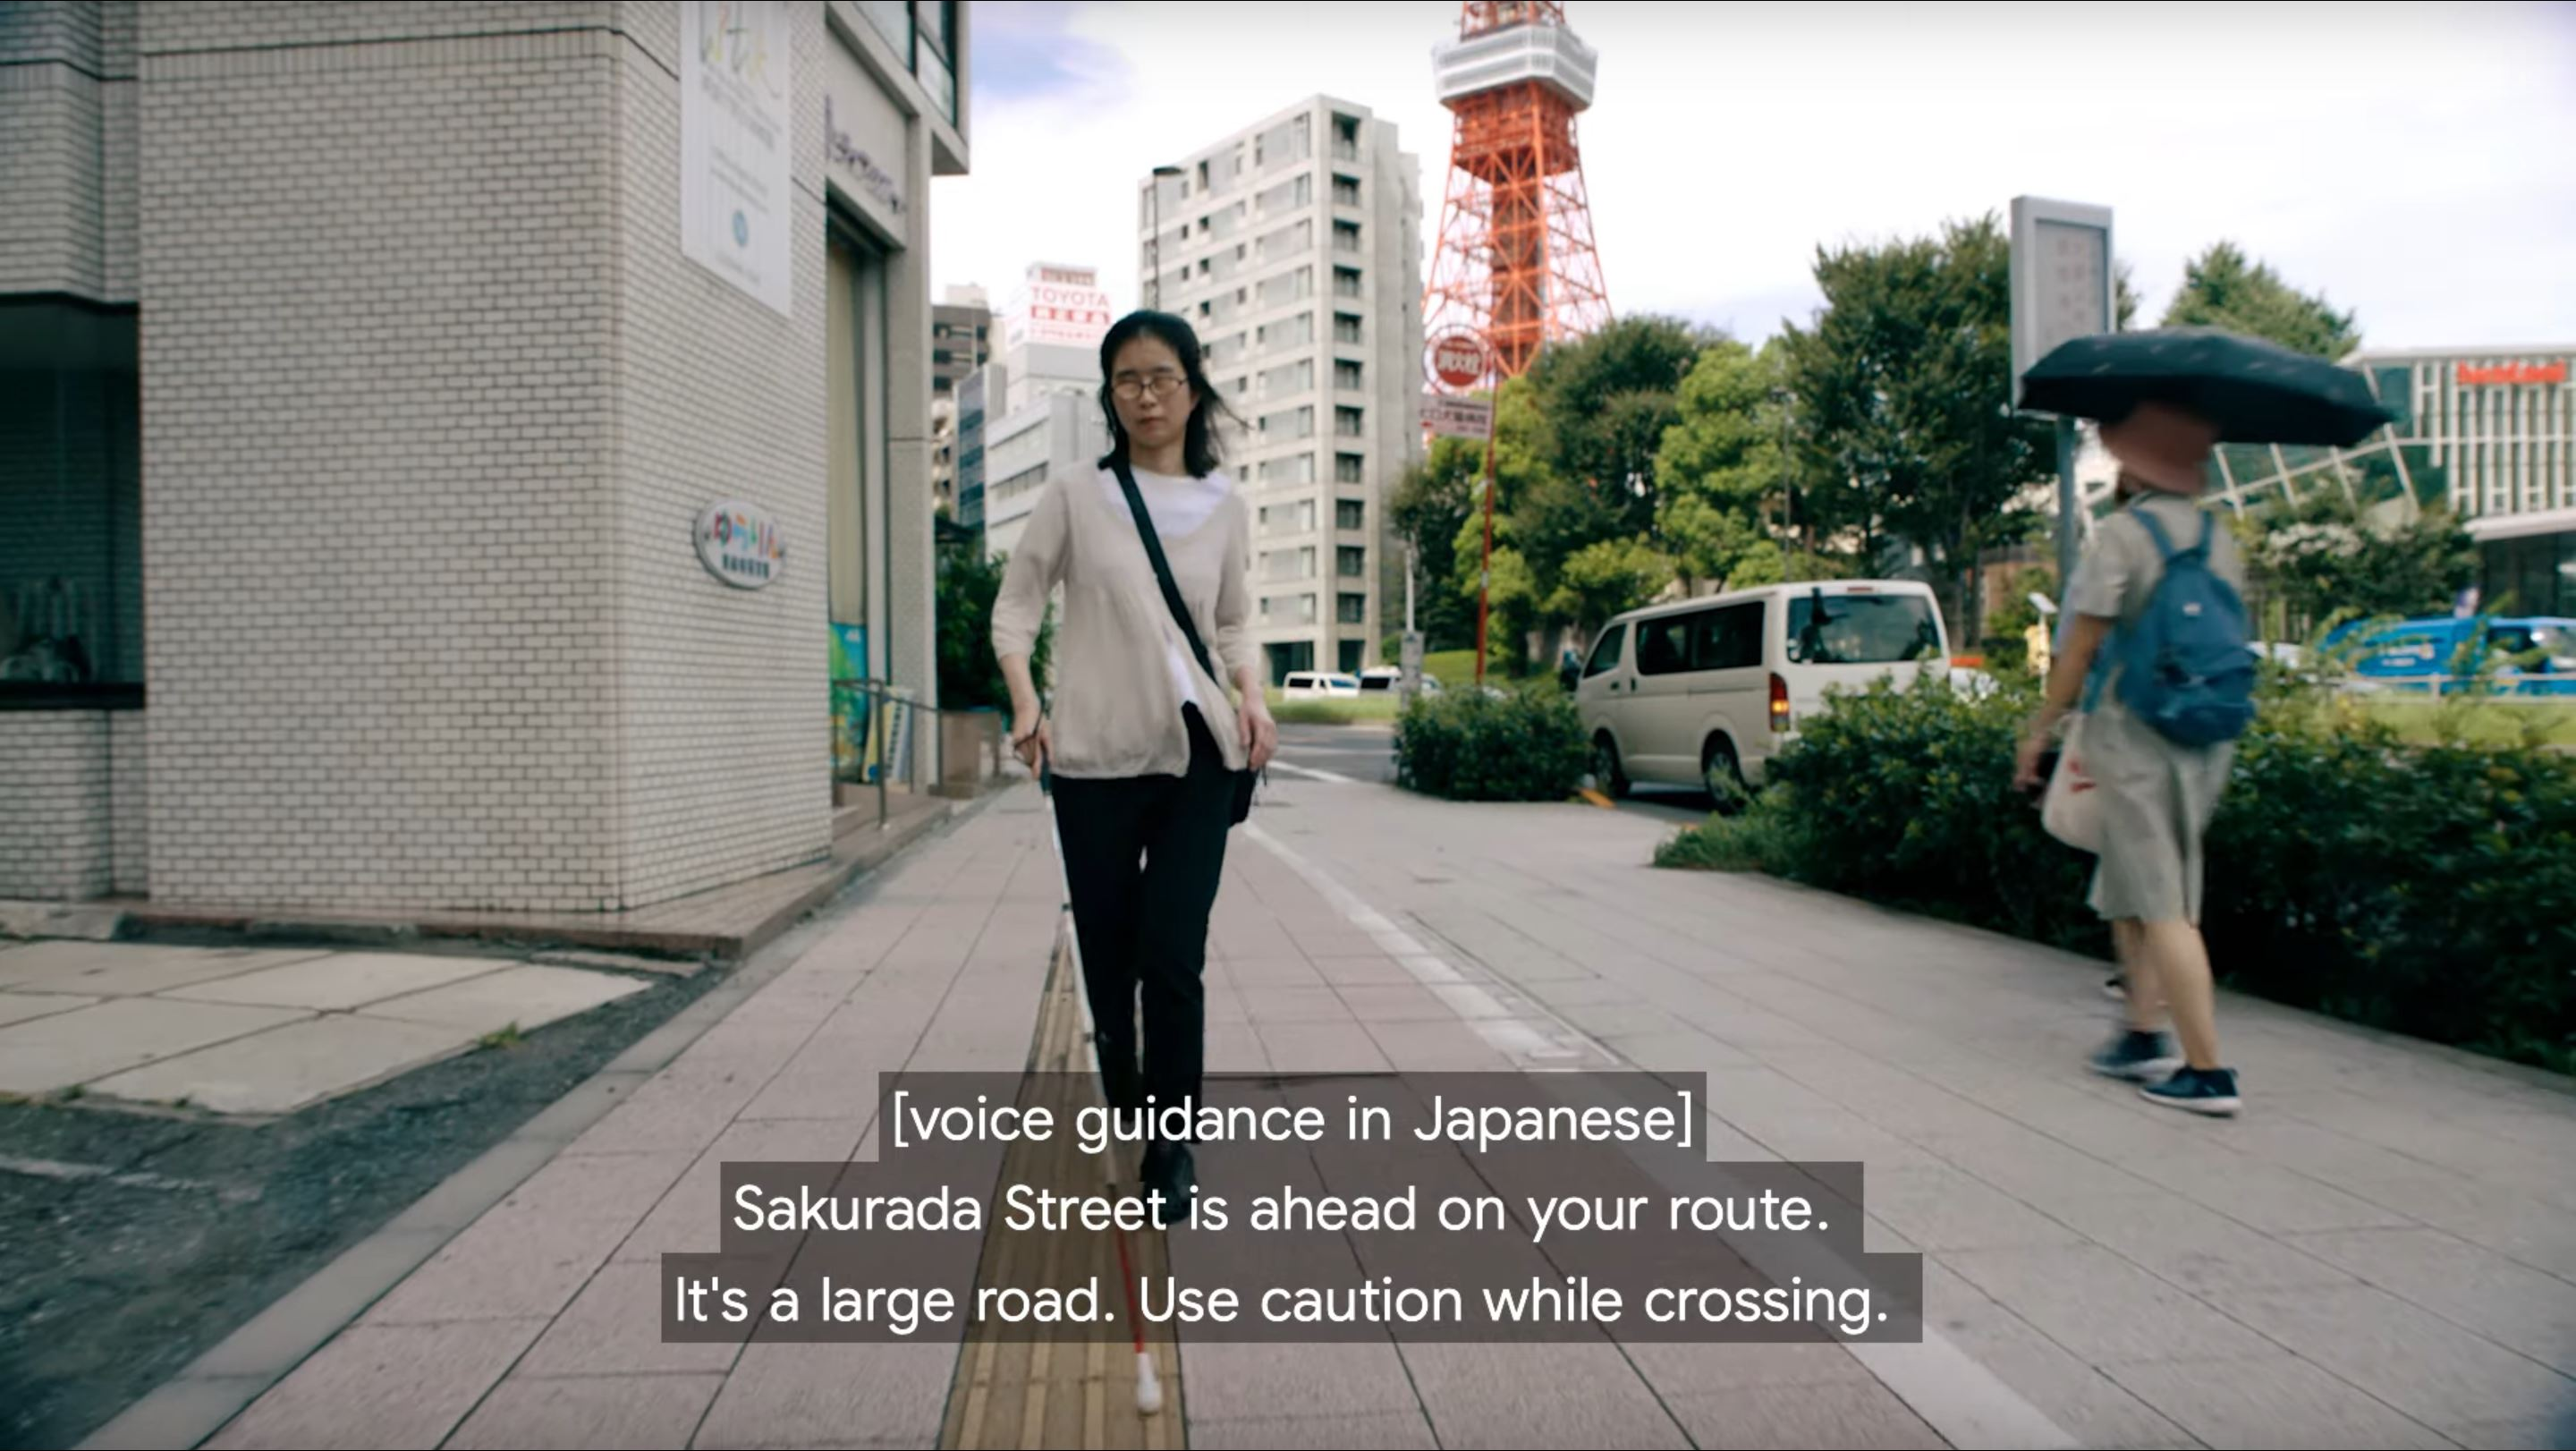 Google Maps updated with enhanced voice guidance for visually impaired peoples